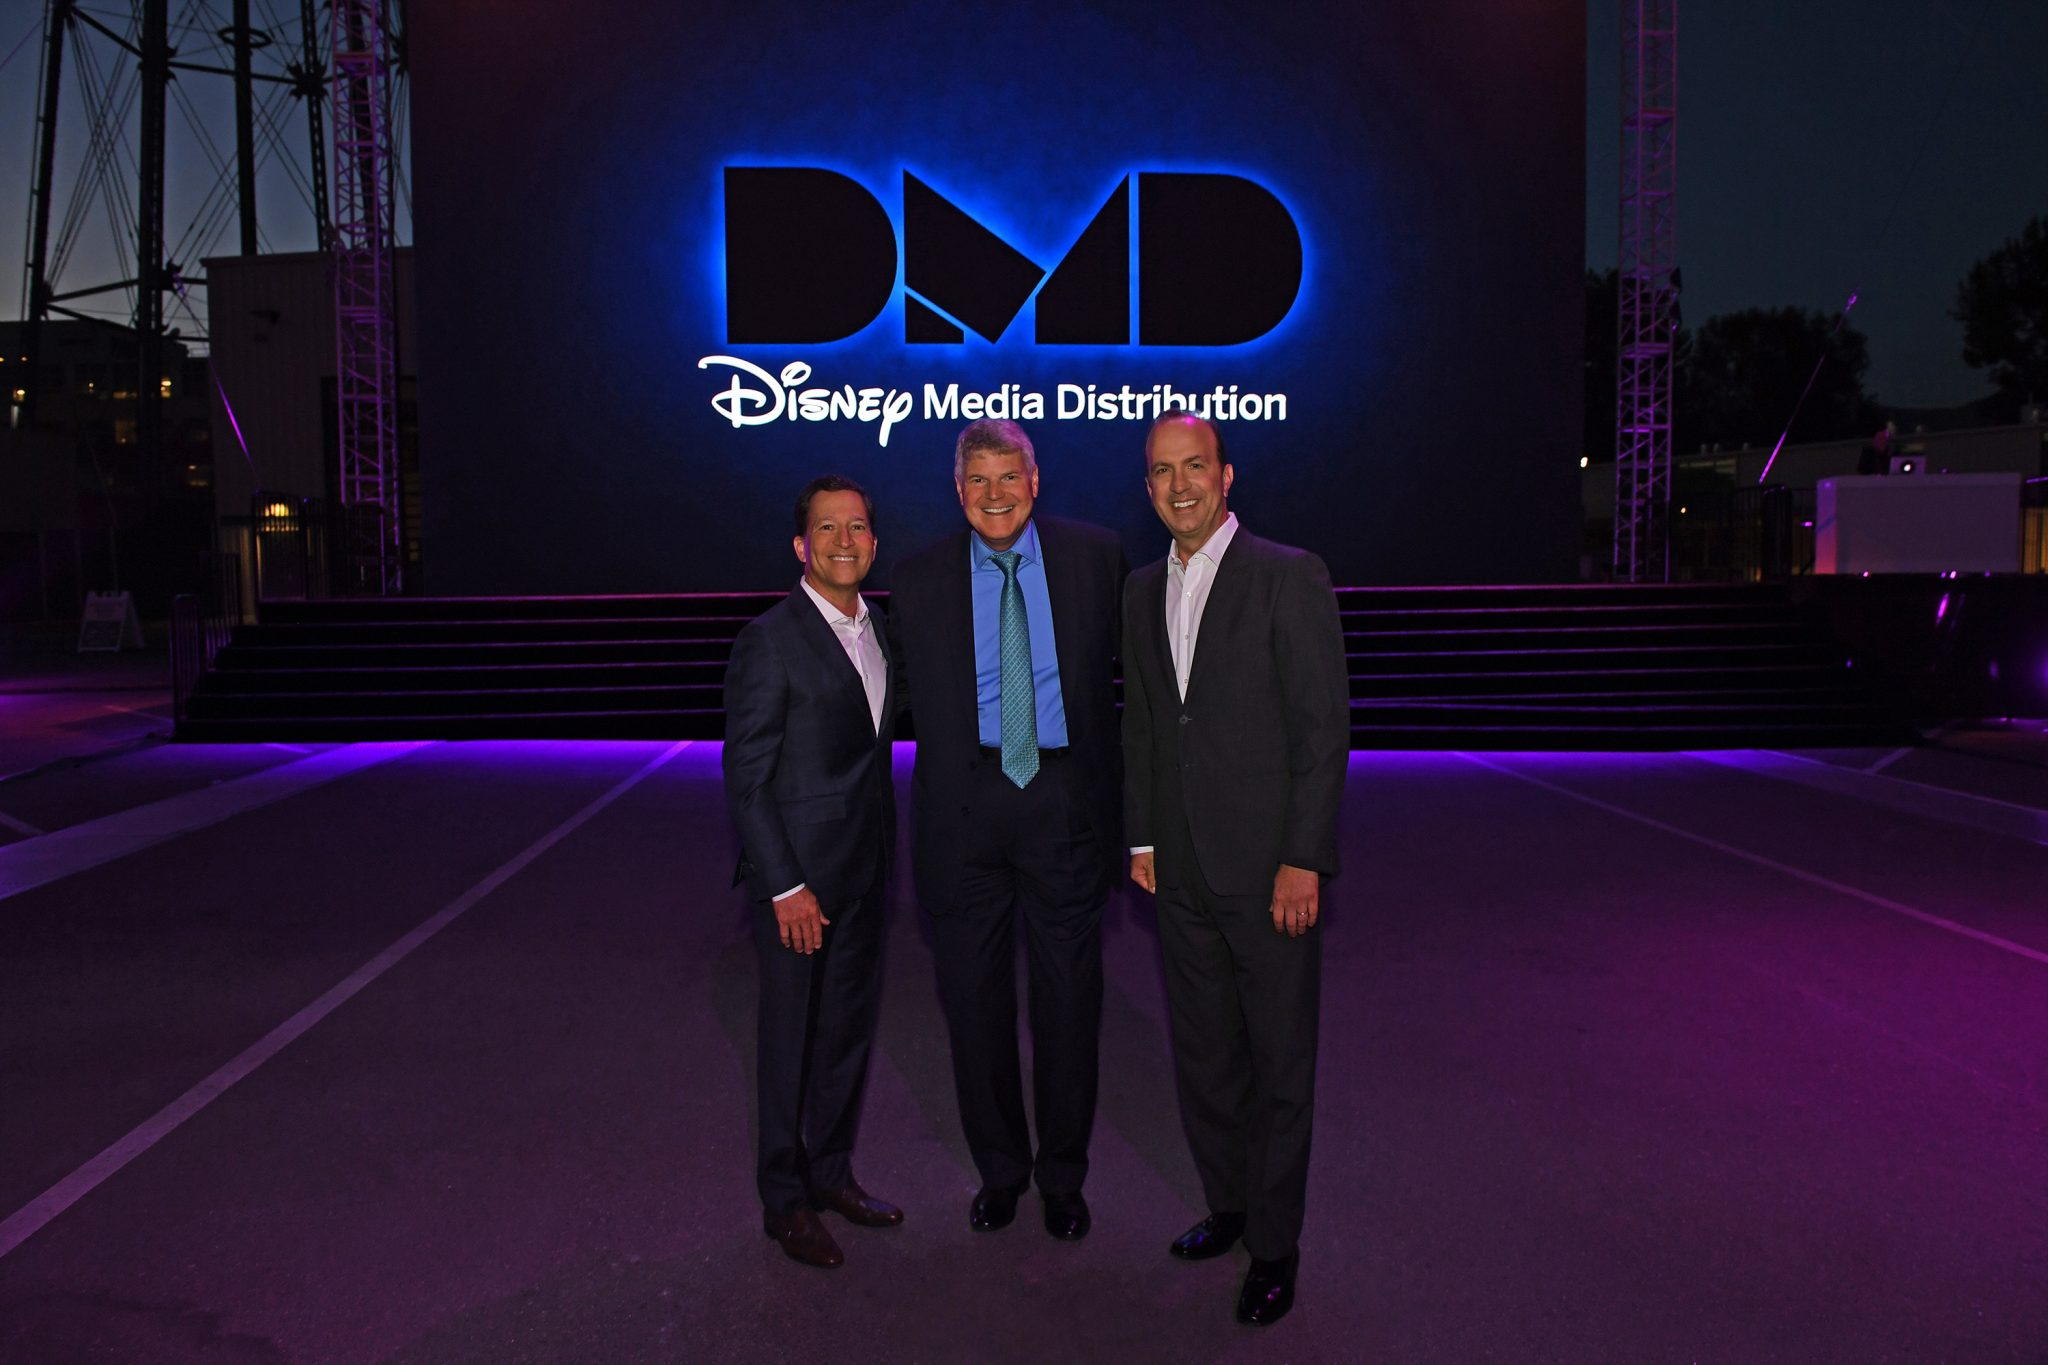 Disney/ABC Television Group president of business operations Bruce Rosenblum; Disney Media Distribution president of global sales Ben Pyne; and Disney Media Networks president co-chairman and DIsney/ABC Television Group president Ben Sherwood at th Disney International Upfront (Photo credit: Disney/Mitch Haddad)